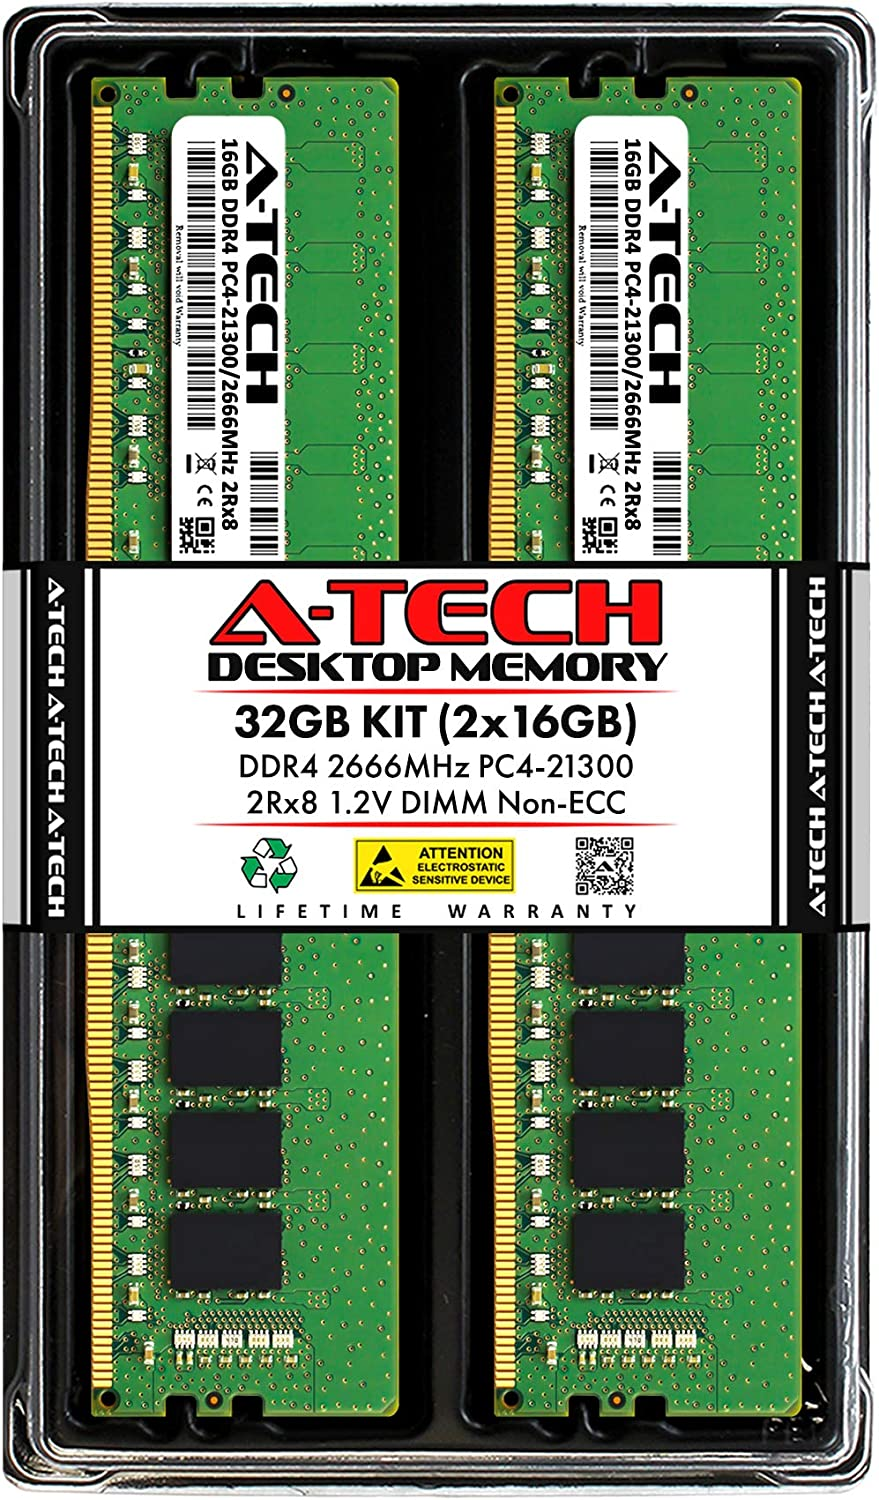 A-Tech 32GB (2x16GB) DDR4 2666MHz DIMM PC4-21300 UDIMM Non-ECC 2Rx8 1.2V CL19 288-Pin Desktop Computer RAM Memory Upgrade Kit